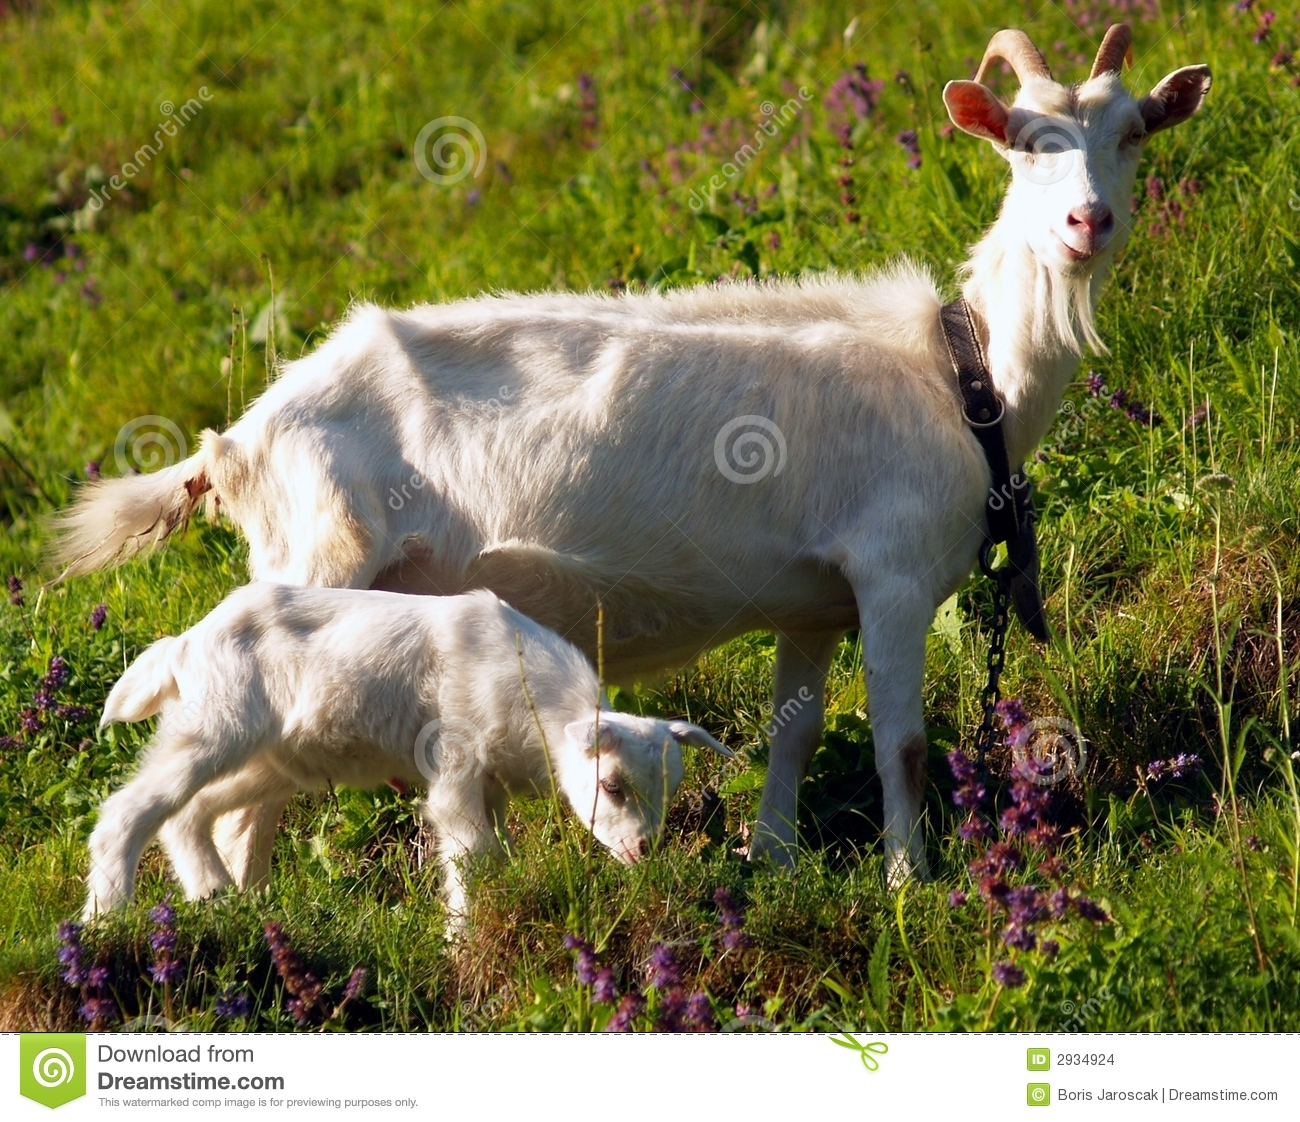 She-goat with yeanling